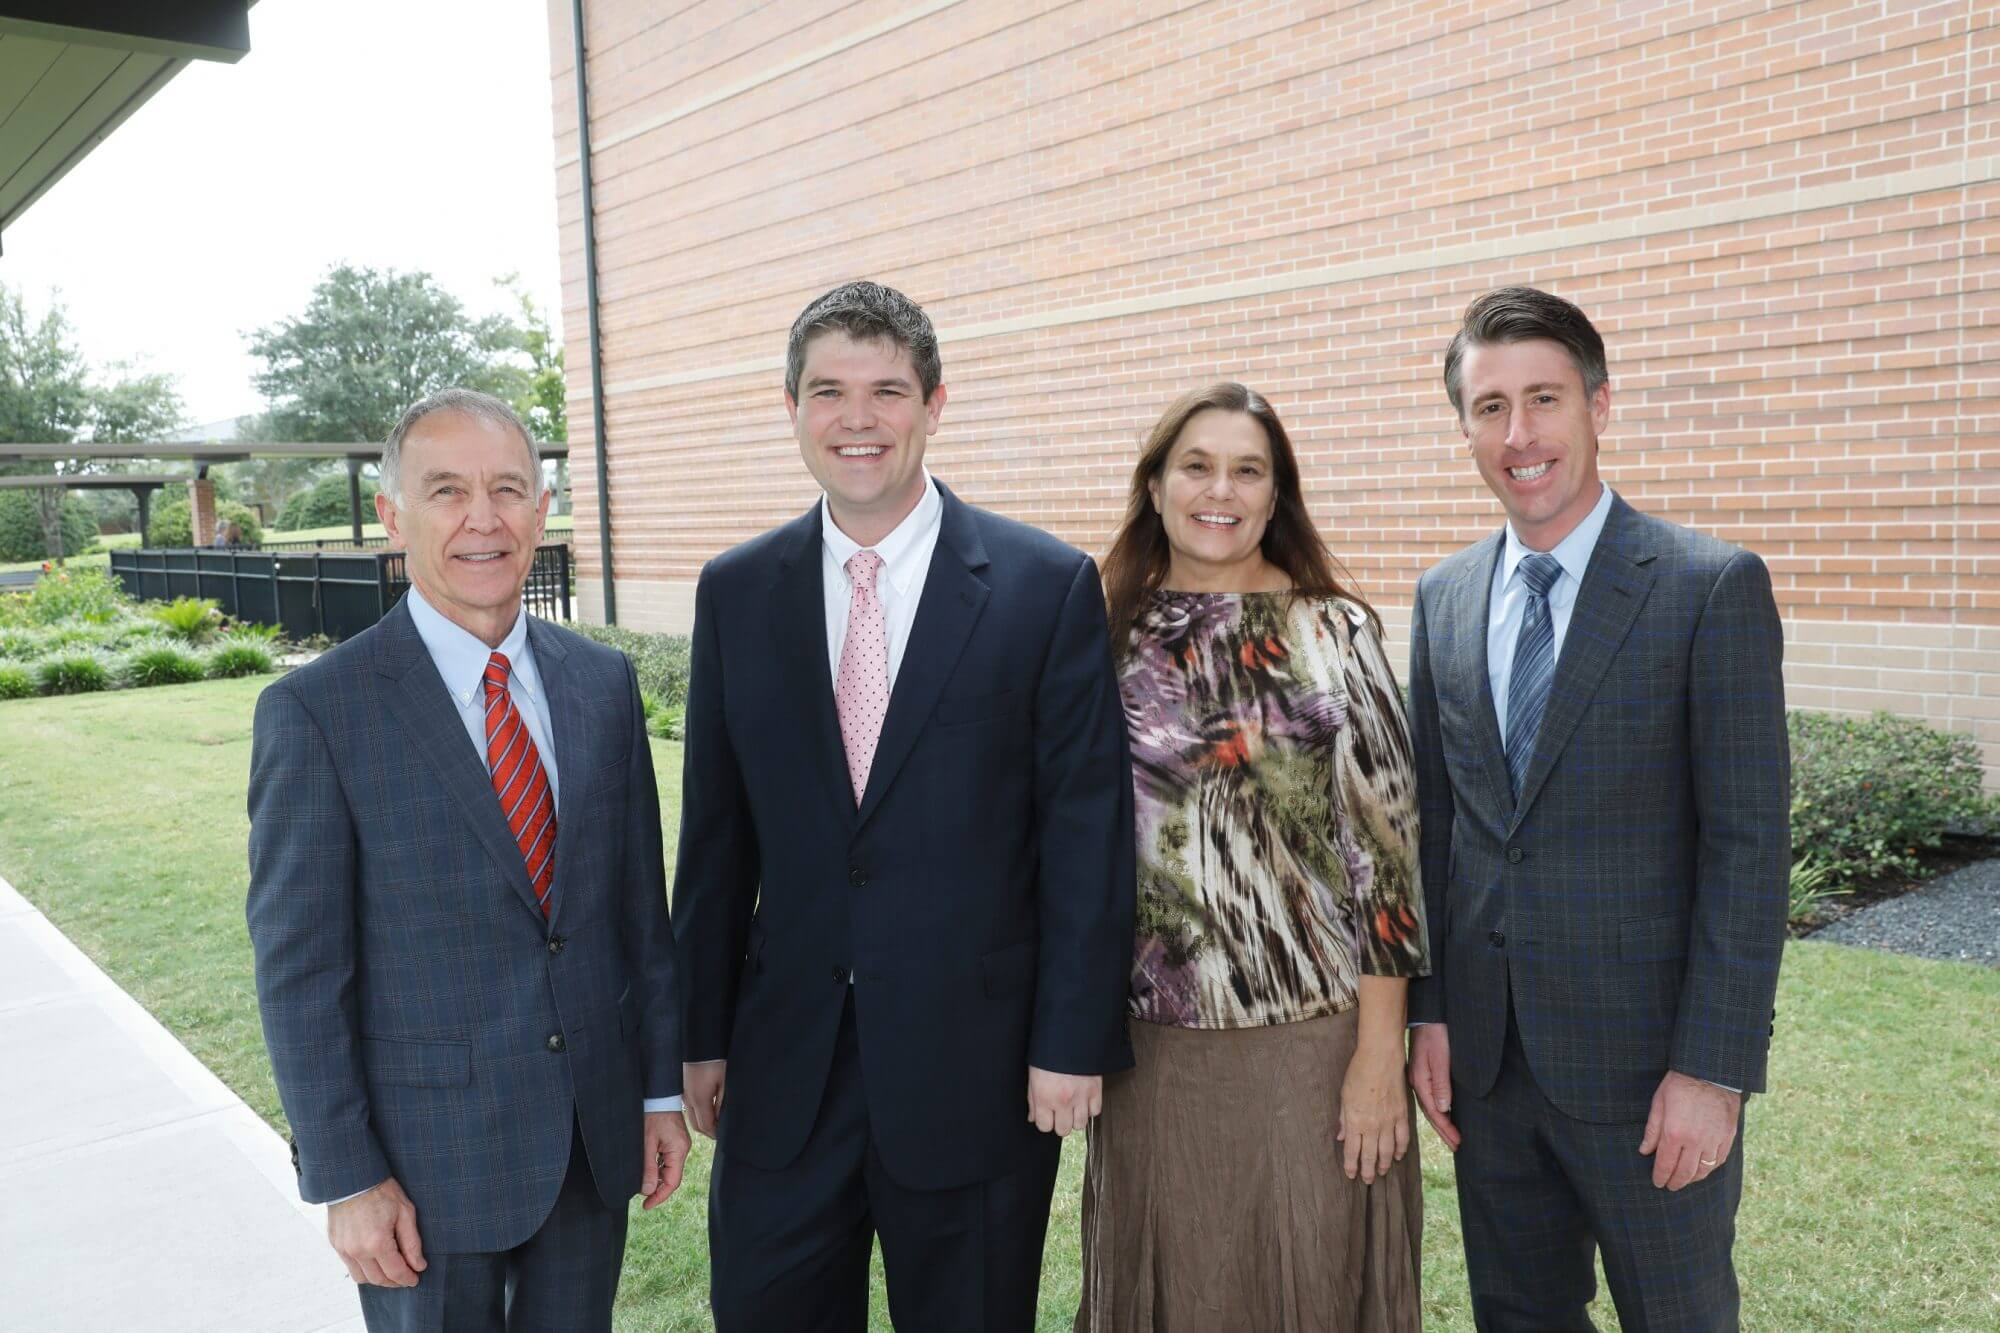 Dr. C. Edward Coffey, president and CEO of The Menninger Clinic; Evan Weinberger, son of Robert Weinberger, Ph.D.; Lennie Weinberger, wife of Robert Weinberger, Ph.D.; and Dr. Jonathan Stevens, Menninger's chief of outpatient services. (Photo credit: Craig Hartley)